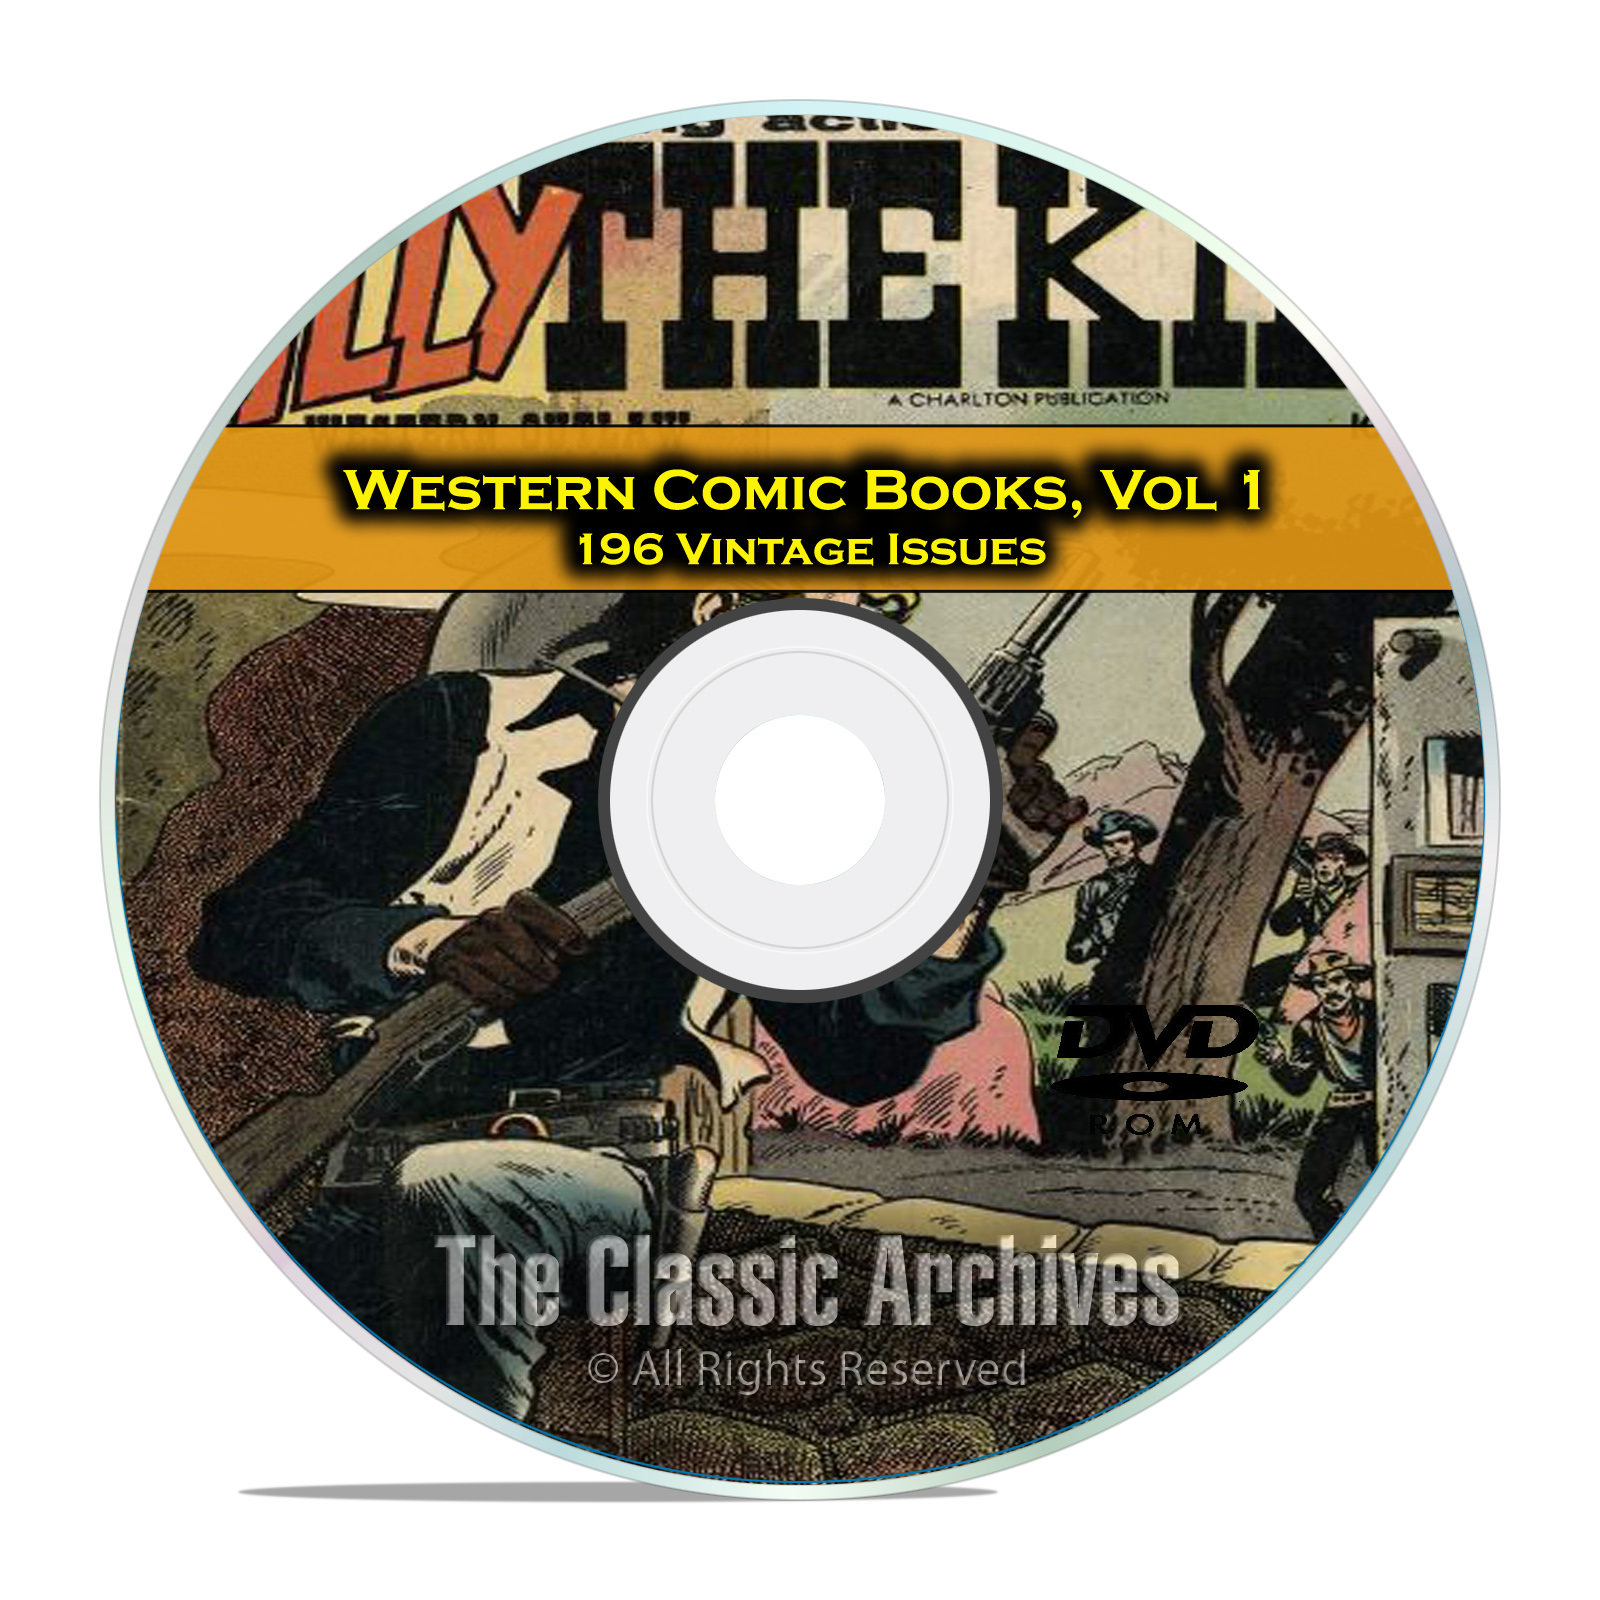 Western Comic Books, Vol 1, Billy The Kid, Cowboy Western, Golden Age DVD